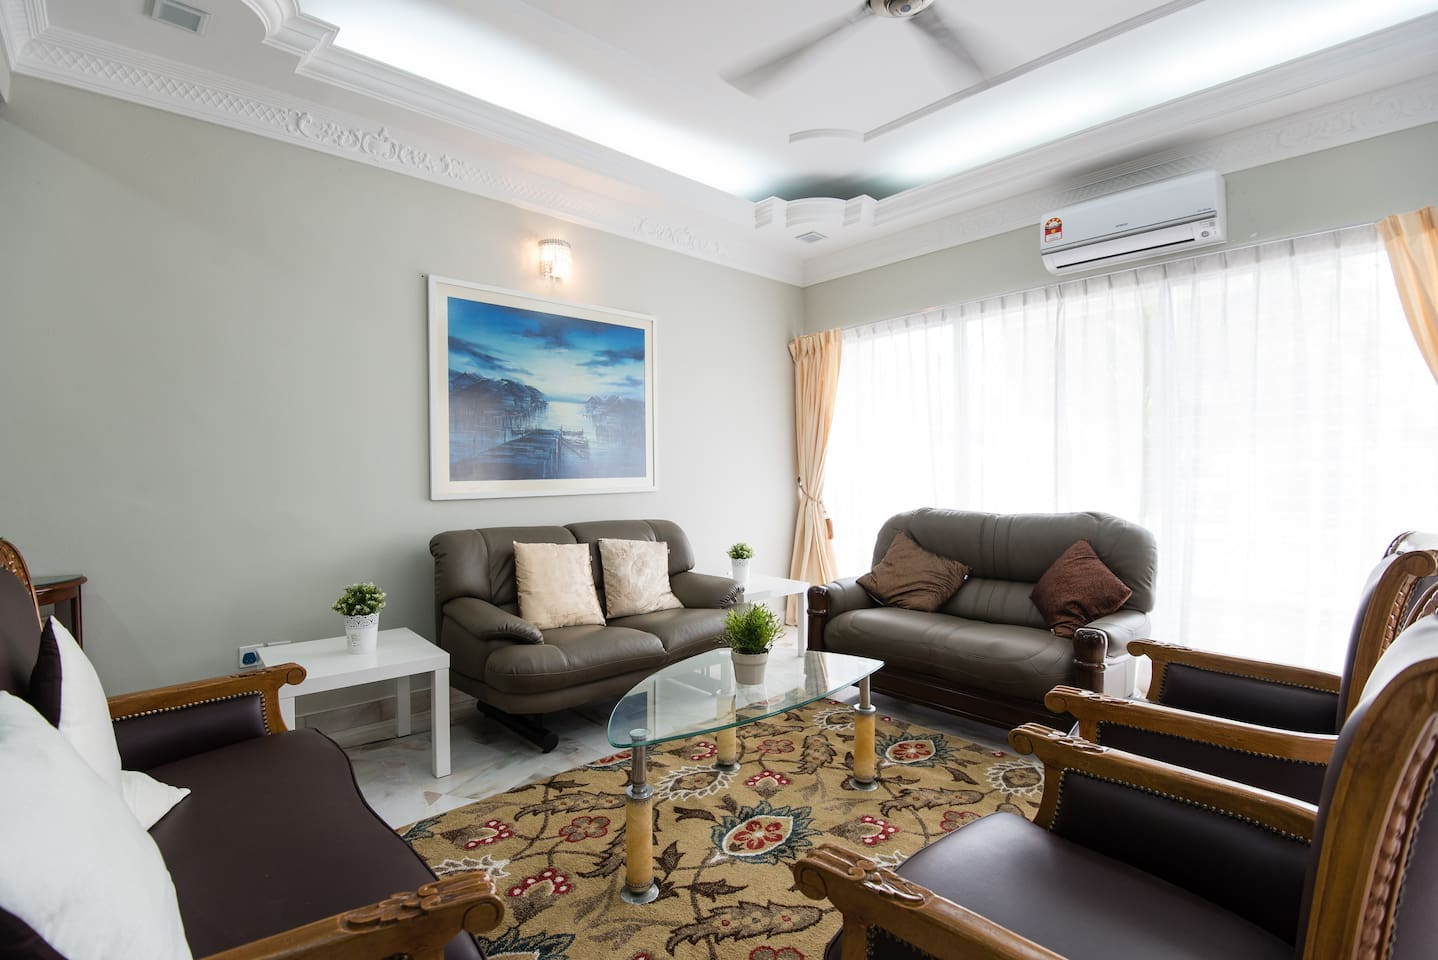 1st floor: Master Bedroom 1 -Spacious, above average 480 sqft with King and 2 Super Single Beds